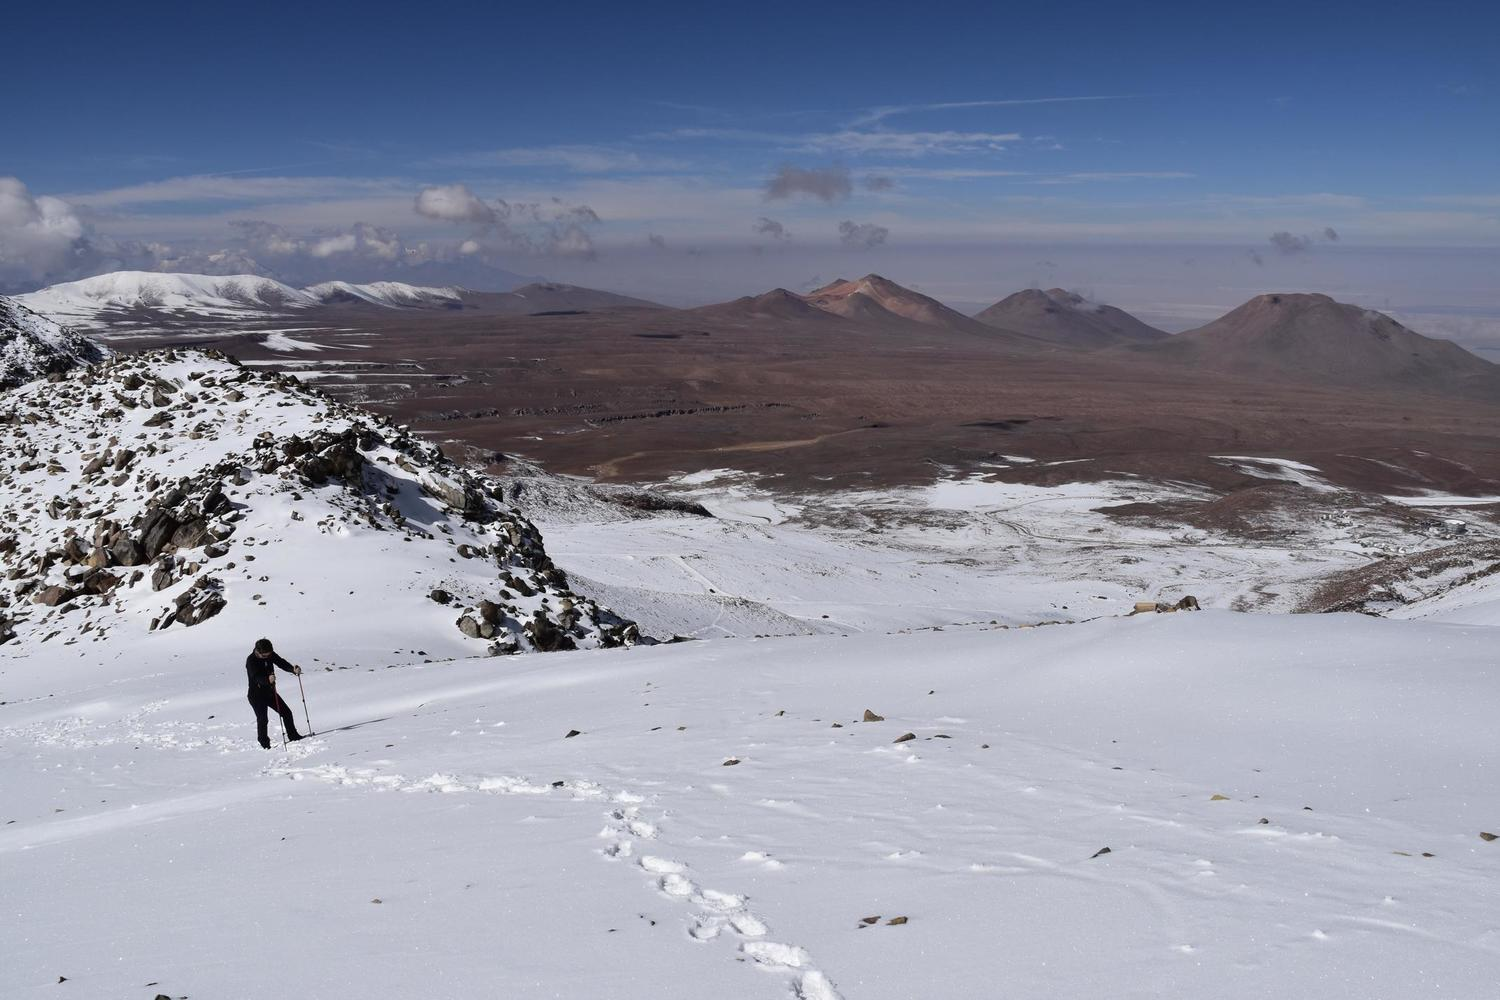 Climbing up to the fresh snow on Chile's Toco volcano